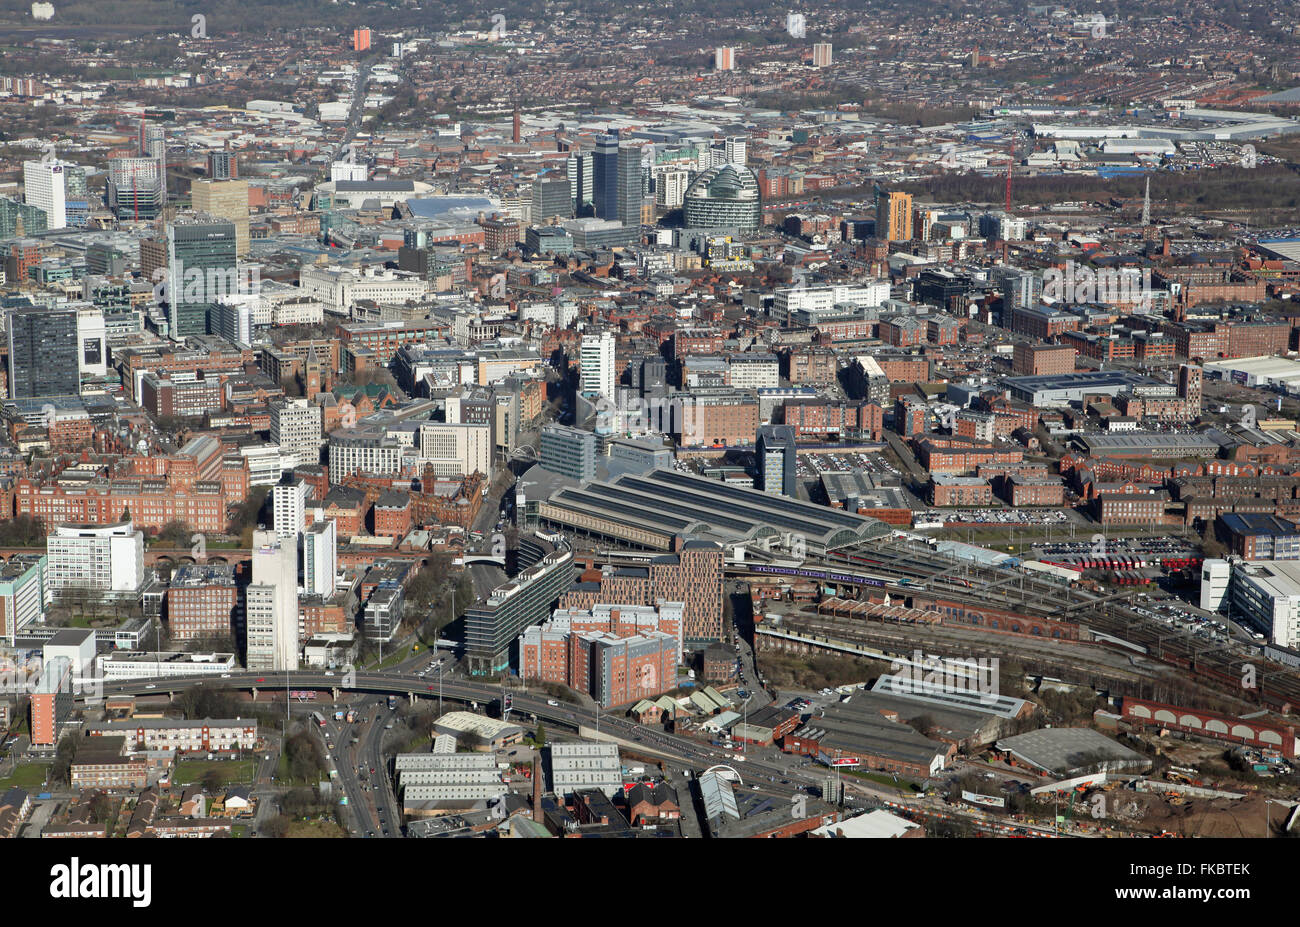 aerial view of the Manchester city centre skyline looking north across Piccadilly Station, UK Stock Photo